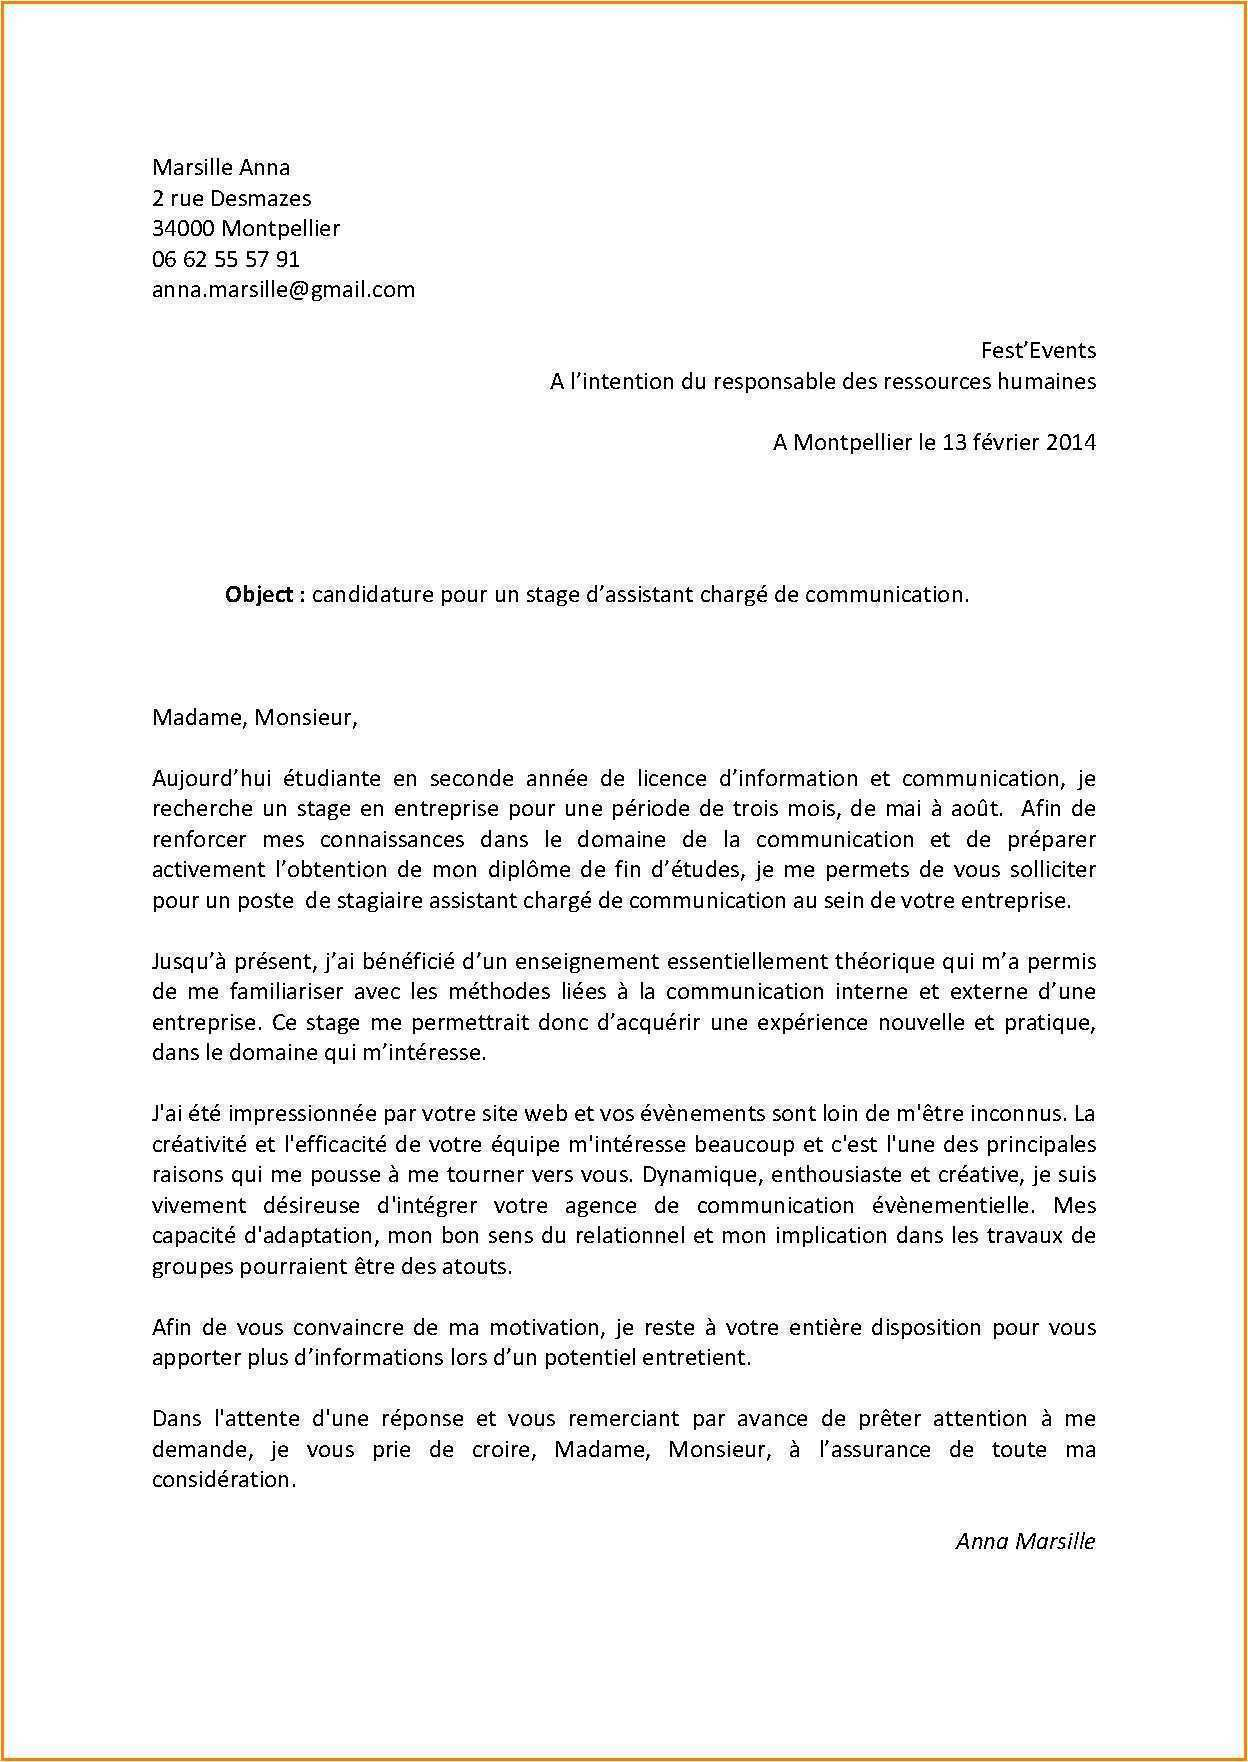 exemple de lettre de motivation trackid sp-006